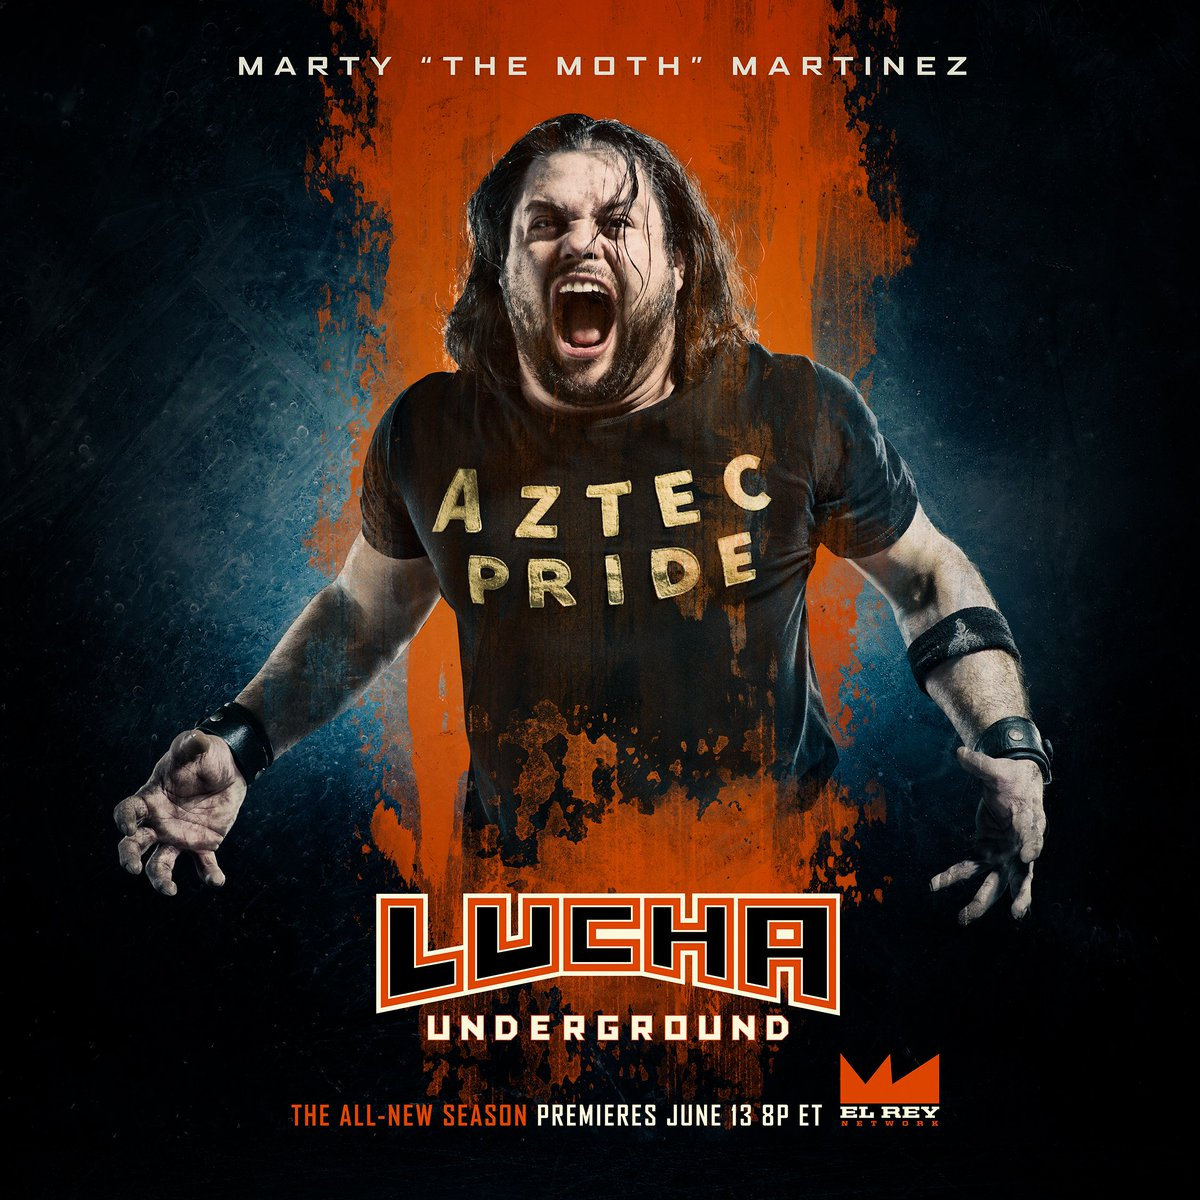 He flaps his wings with Aztec Pride. He is MARTY THE MOTH MARTINEZ! The all-new season of @LuchaElRey begins WEDNESDAY JUNE 13th 8p ET on @ElReyNetwork!! #luchaunderground #luchalibre #prowrestling #wrestling #martythemoth #aztecpride #newseason #ridewithelrey @martincasaus<br>http://pic.twitter.com/lLK2HZb8PZ